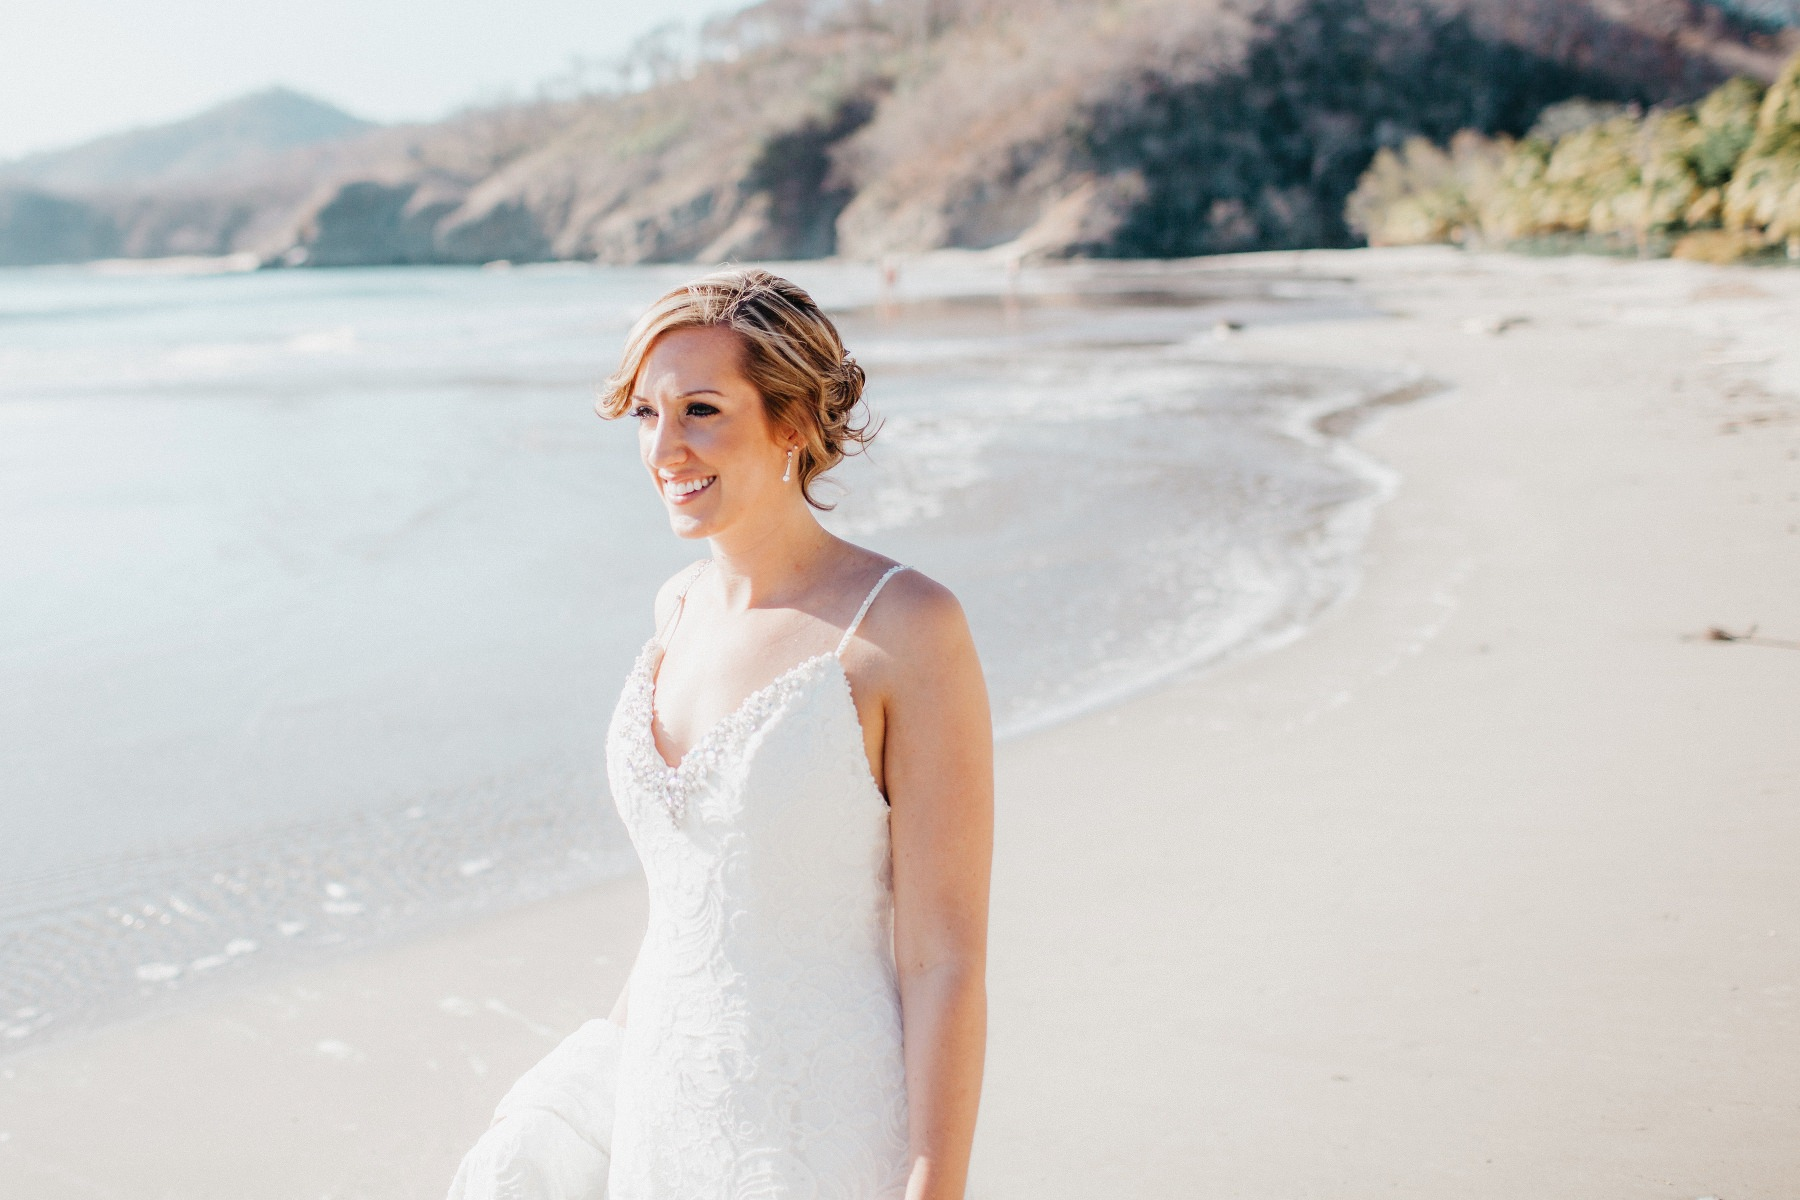 Wedding dress for destination beach wedding in Costa Rica